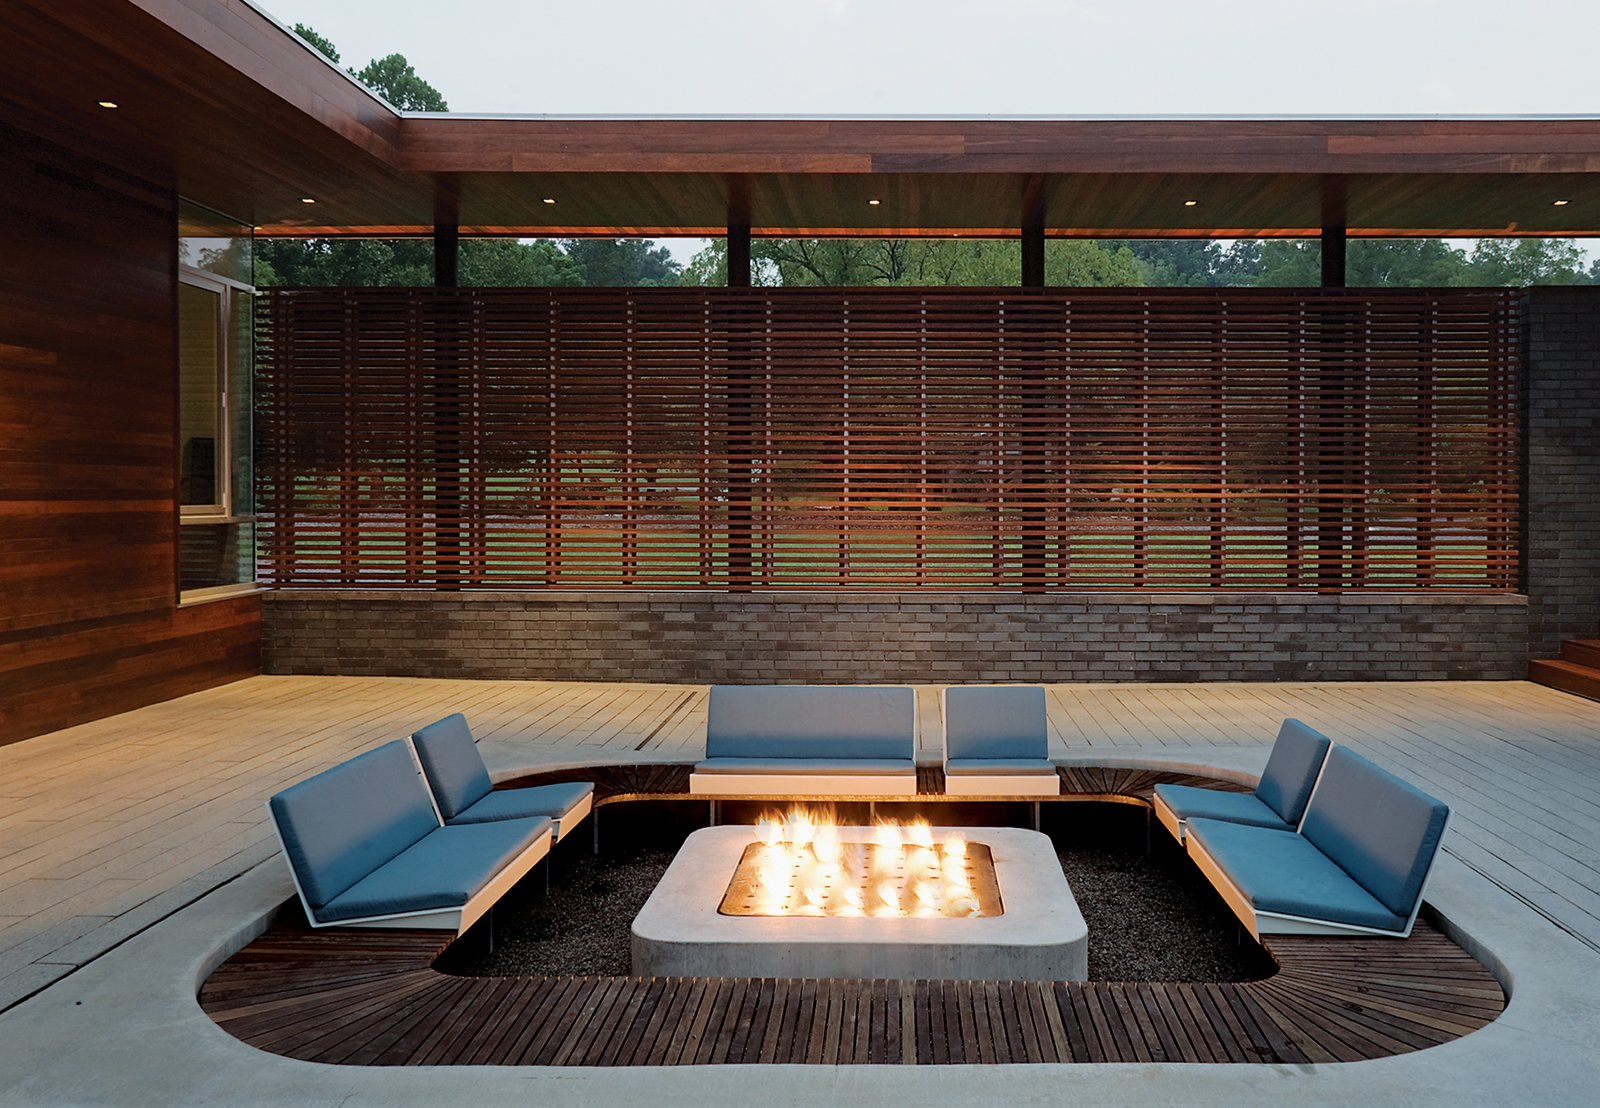 Taking cues from a Japanese-influenced slatted screen applied to the house's facade, Hufft Projects applied a ring of ipe wood around the perimeter of this outdoor firepit. Tagged: Outdoor, Back Yard, Concrete Patio, Porch, Deck, Wood Patio, Porch, Deck, Horizontal Fences, Wall, and Wood Fences, Wall.  Photo 11 of 11 in Take it Outside With These 11 Spring-Friendly Deck Spaces from Slat Happy: 8 Louvered Homes